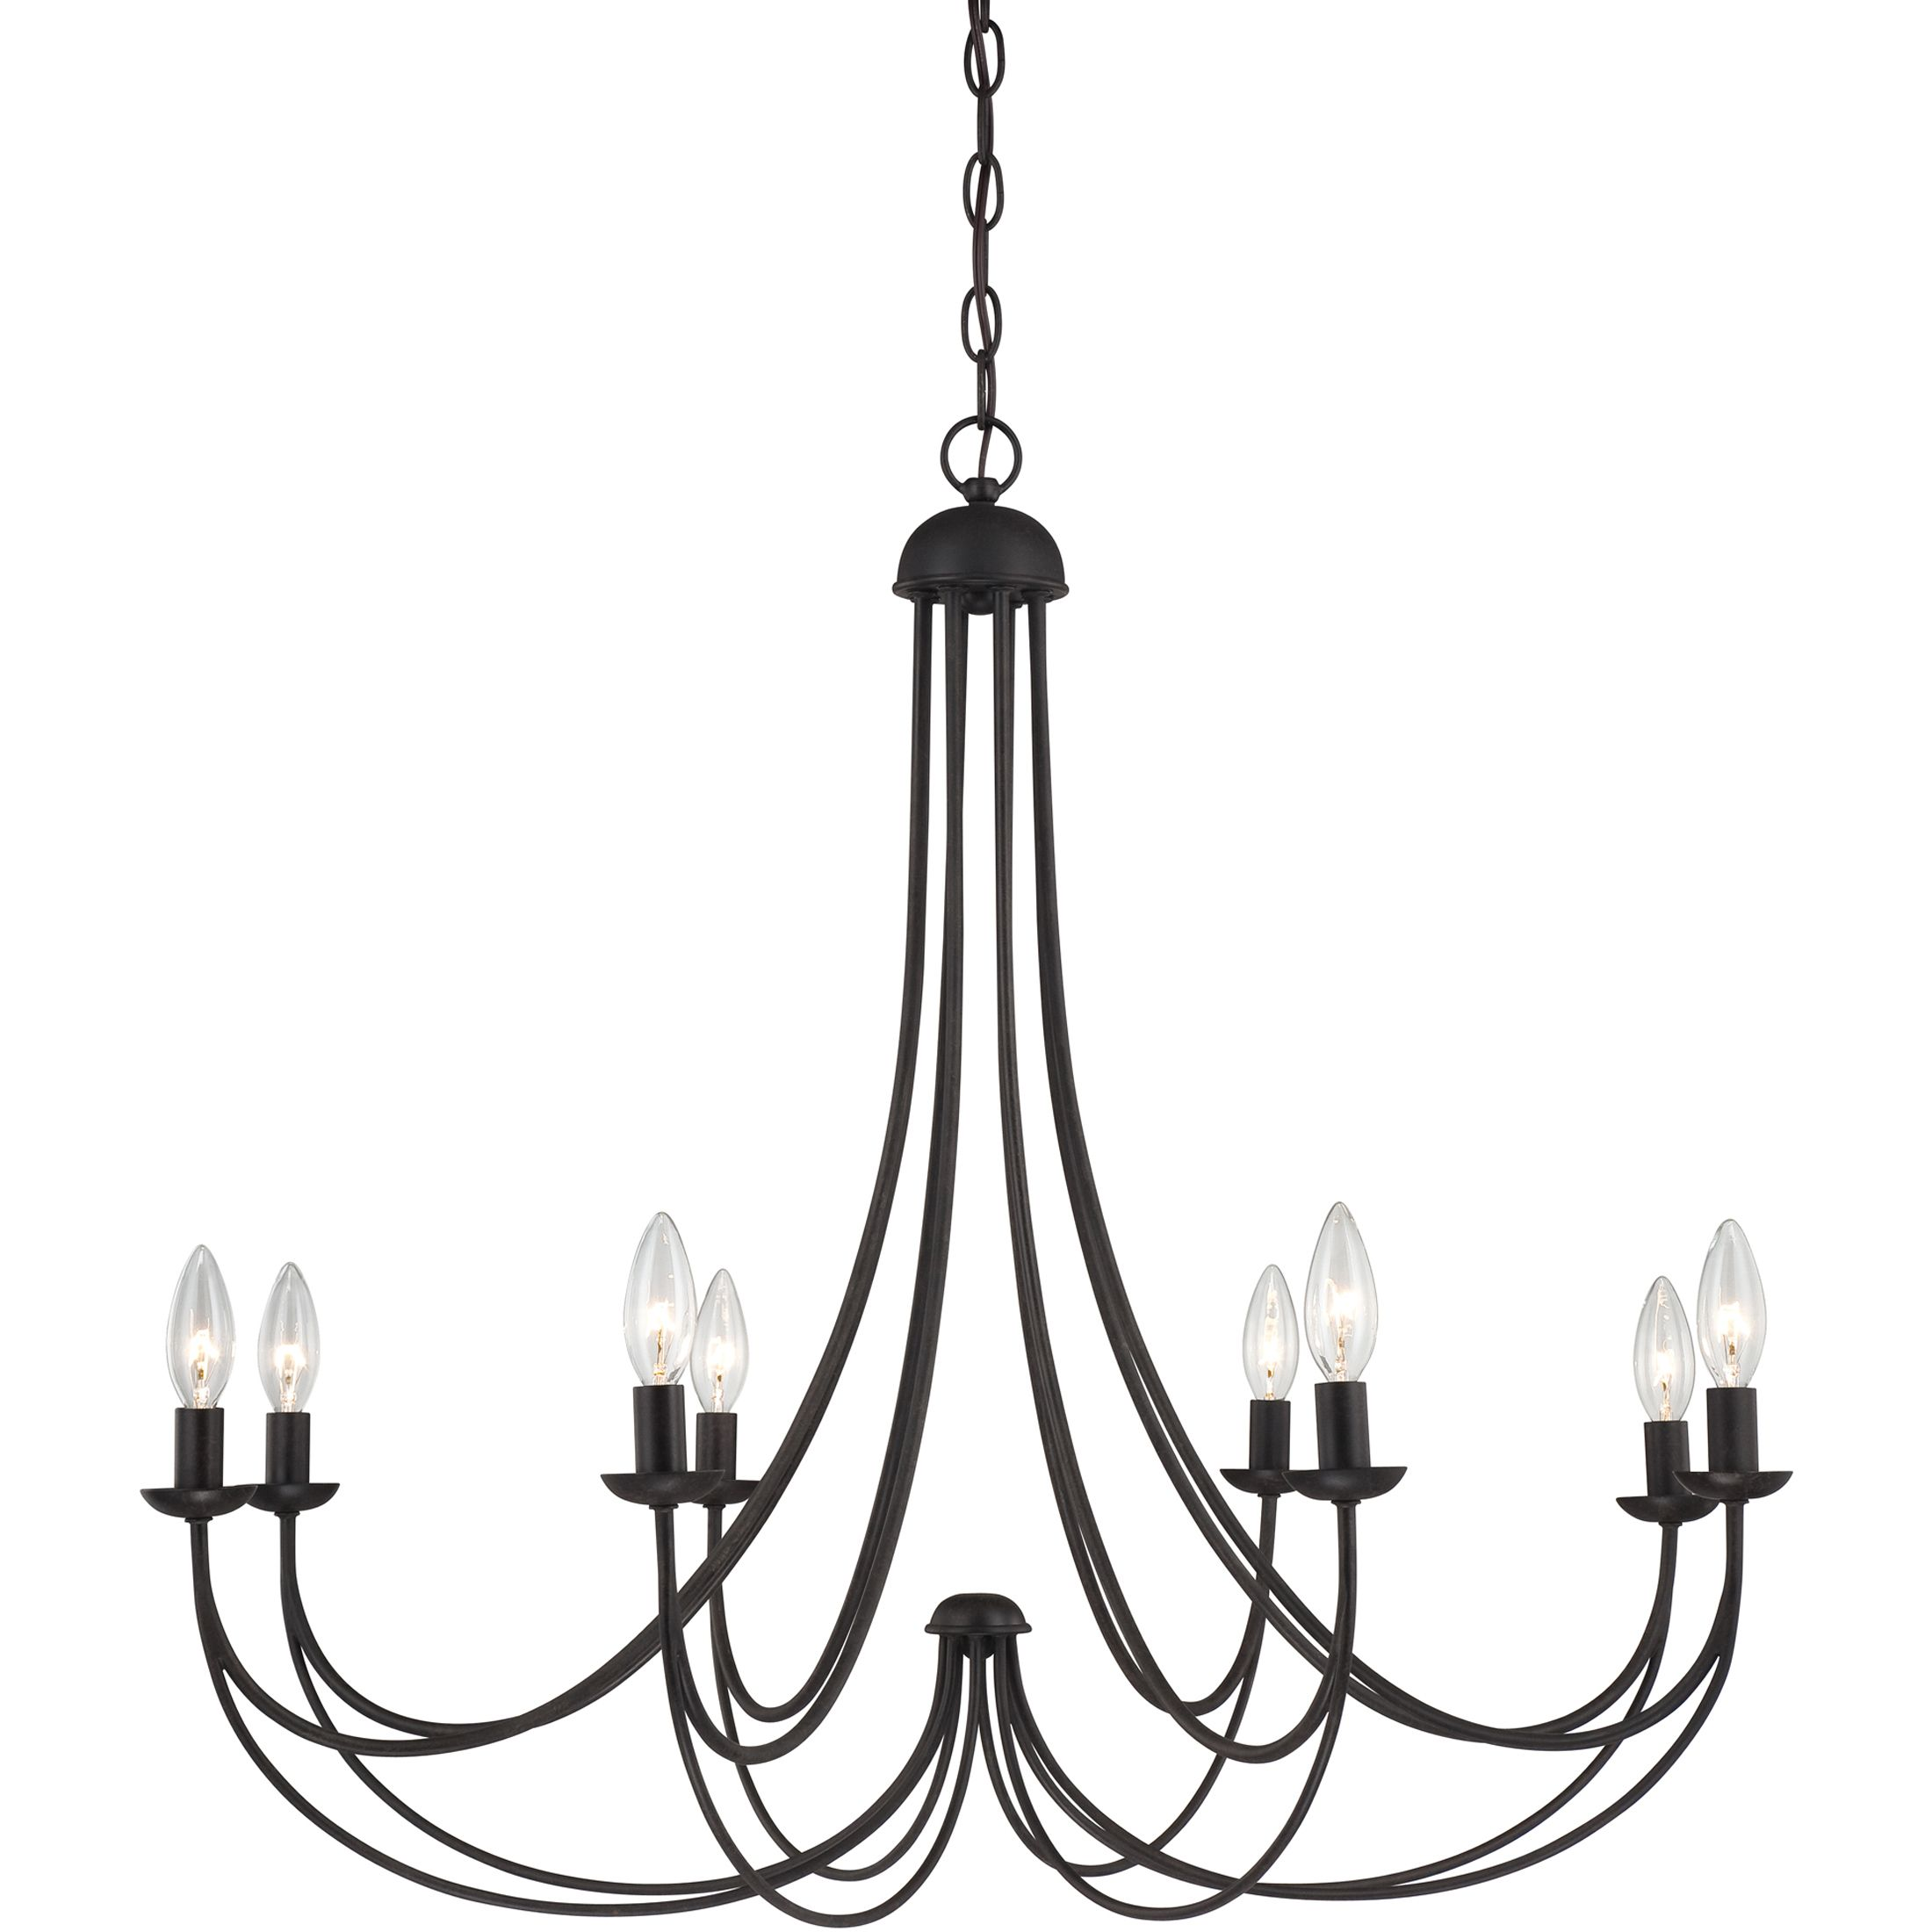 2200x2200 Chandeliers Drawing Candle For Free Download